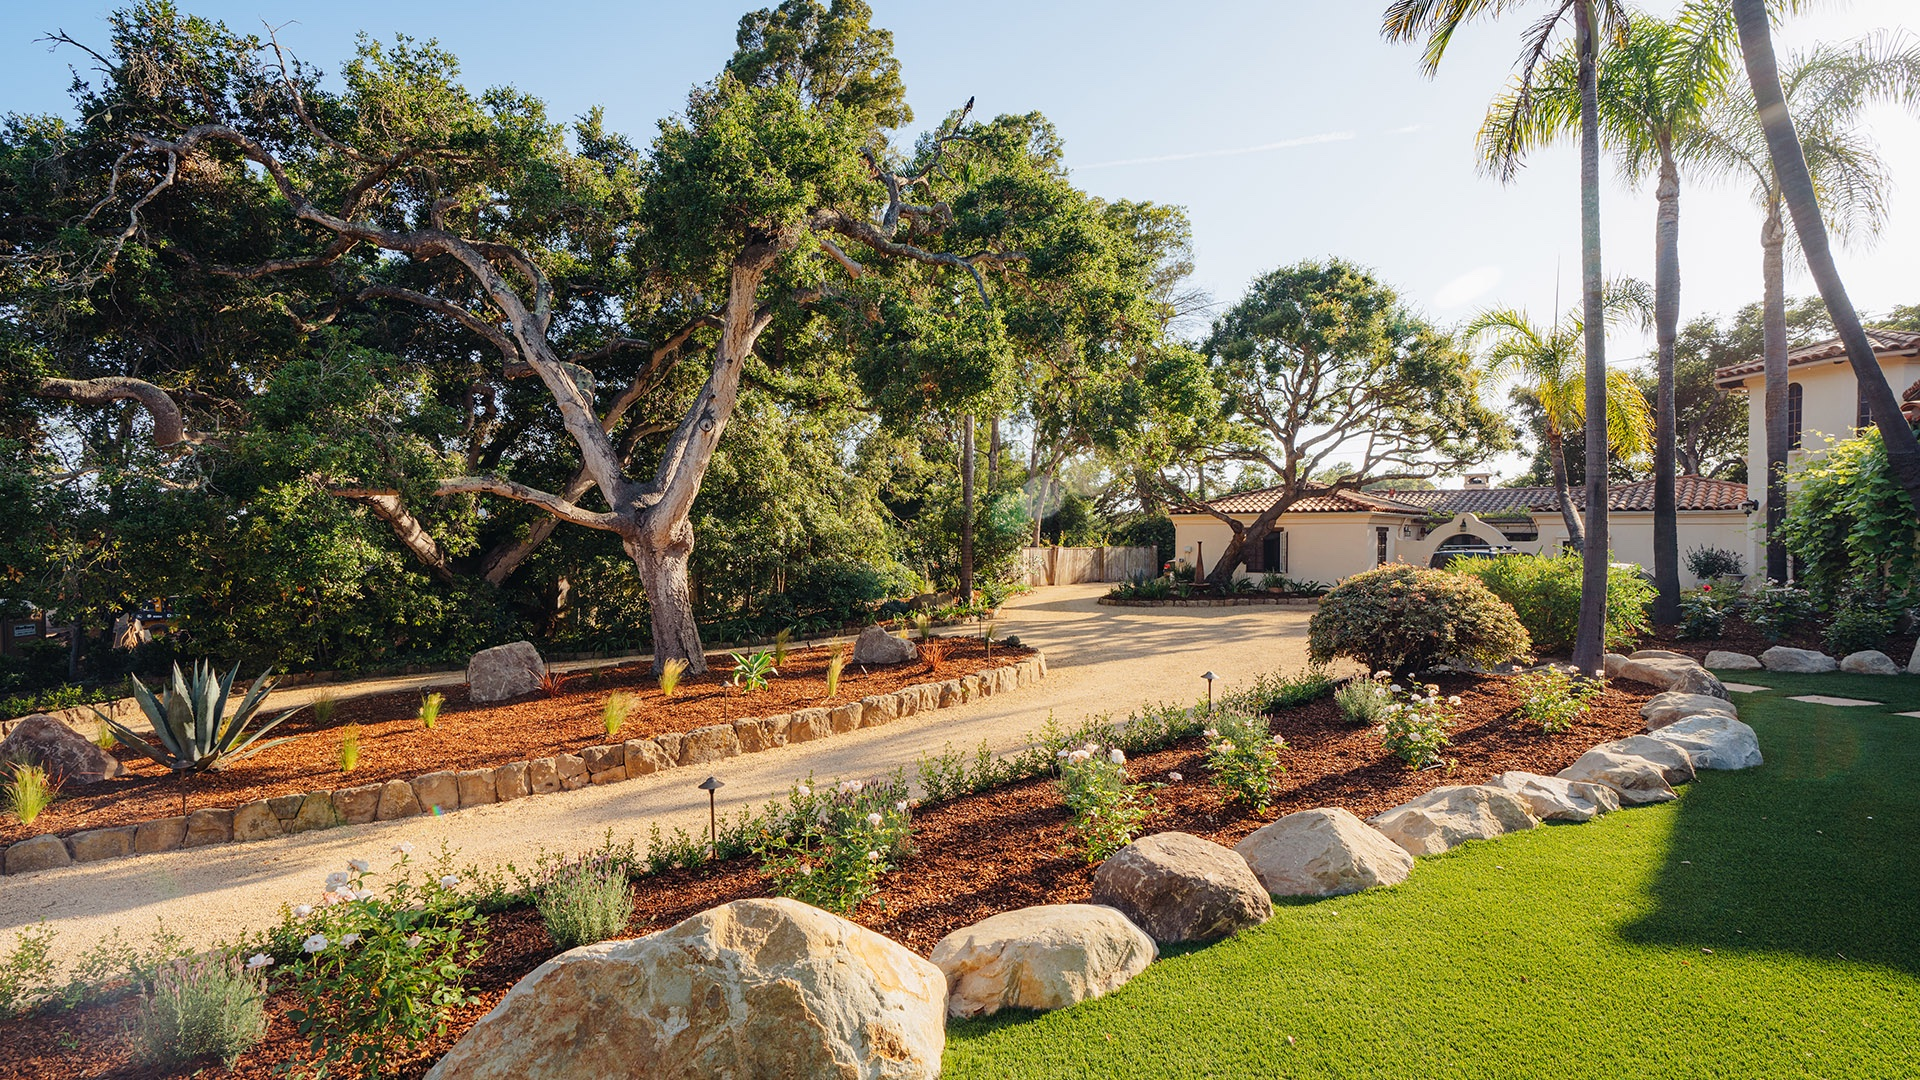 Landscaping services by EcoLawn Santa Barbara